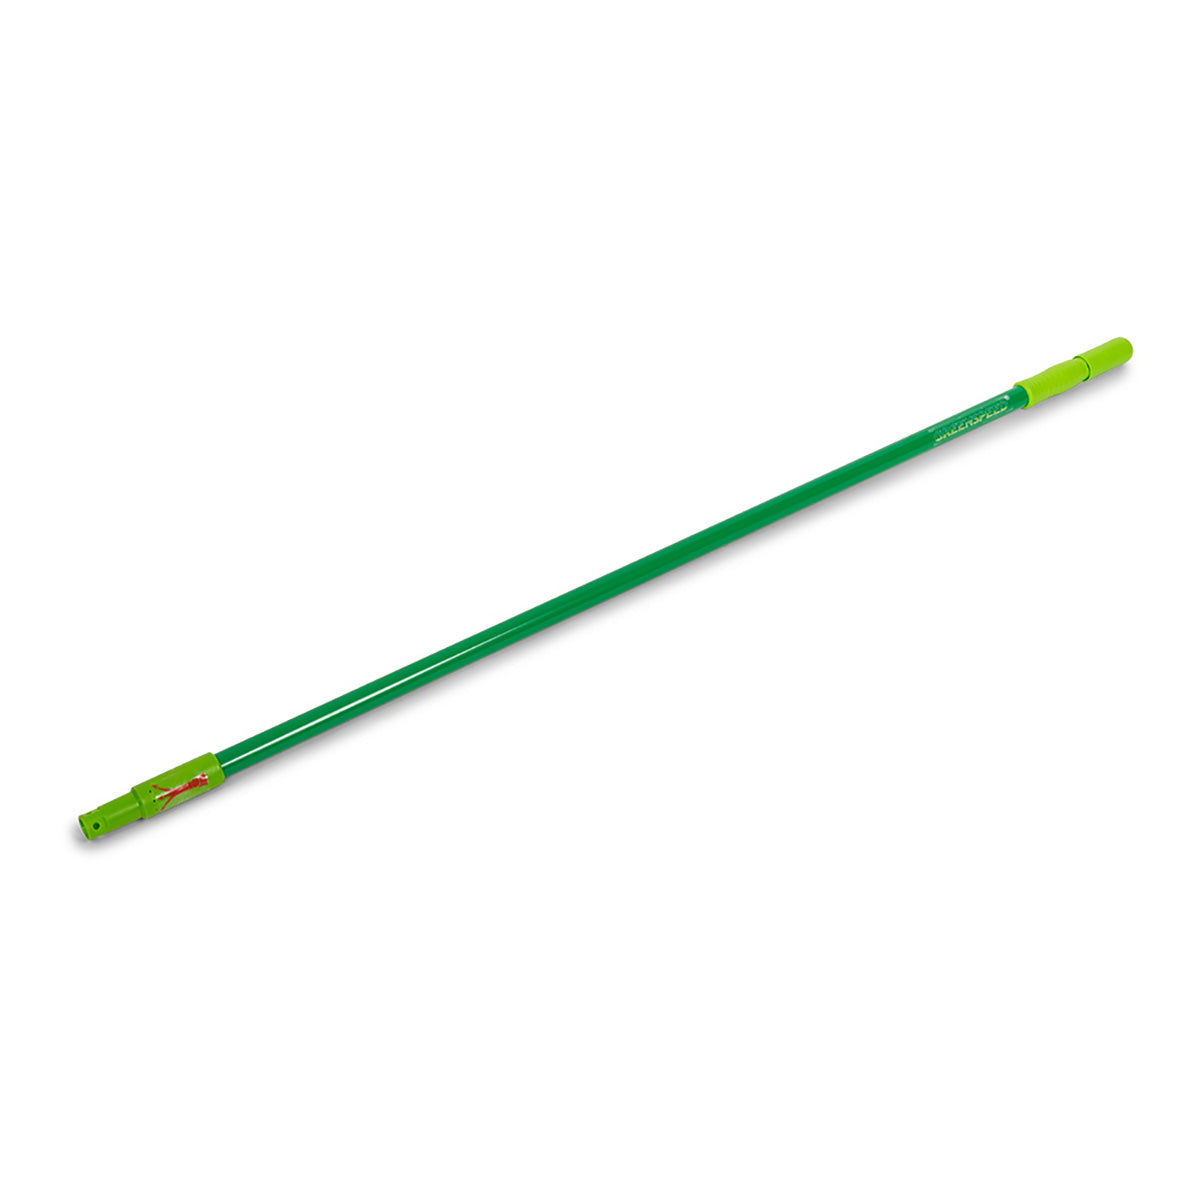 GREENSPEED SPRENKLER HANDLE (SPRAY MOP HANDLE) Green - Sold by Single Unit in multiples of 1 Single Unit